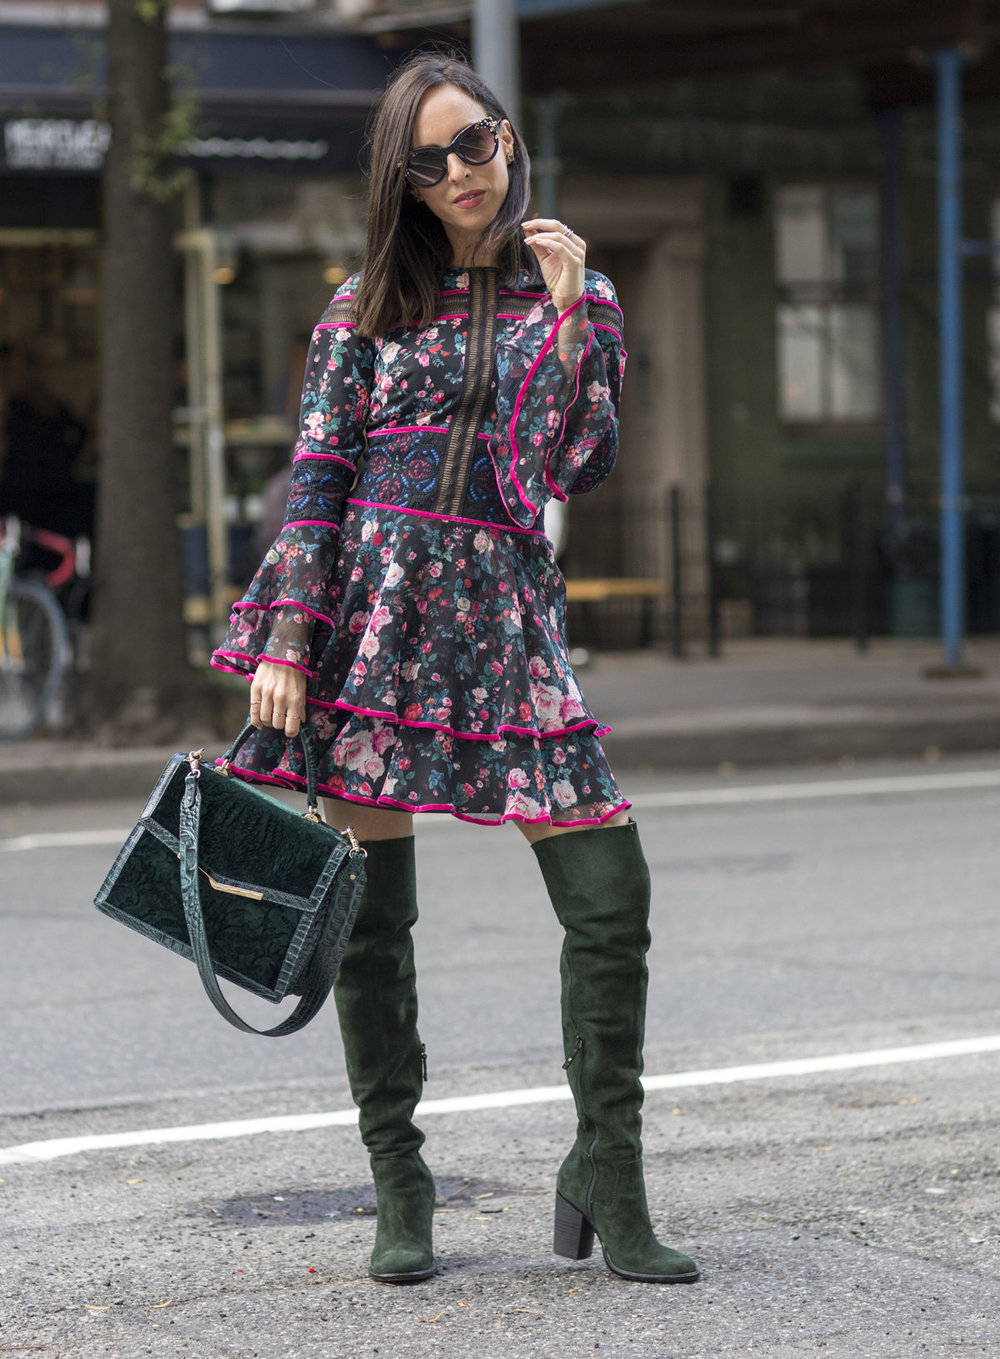 Sydne-Style-shows-the-best-new-york-fashion-week-street-style-in-over-the-knee-boots-1200x1631.jpg